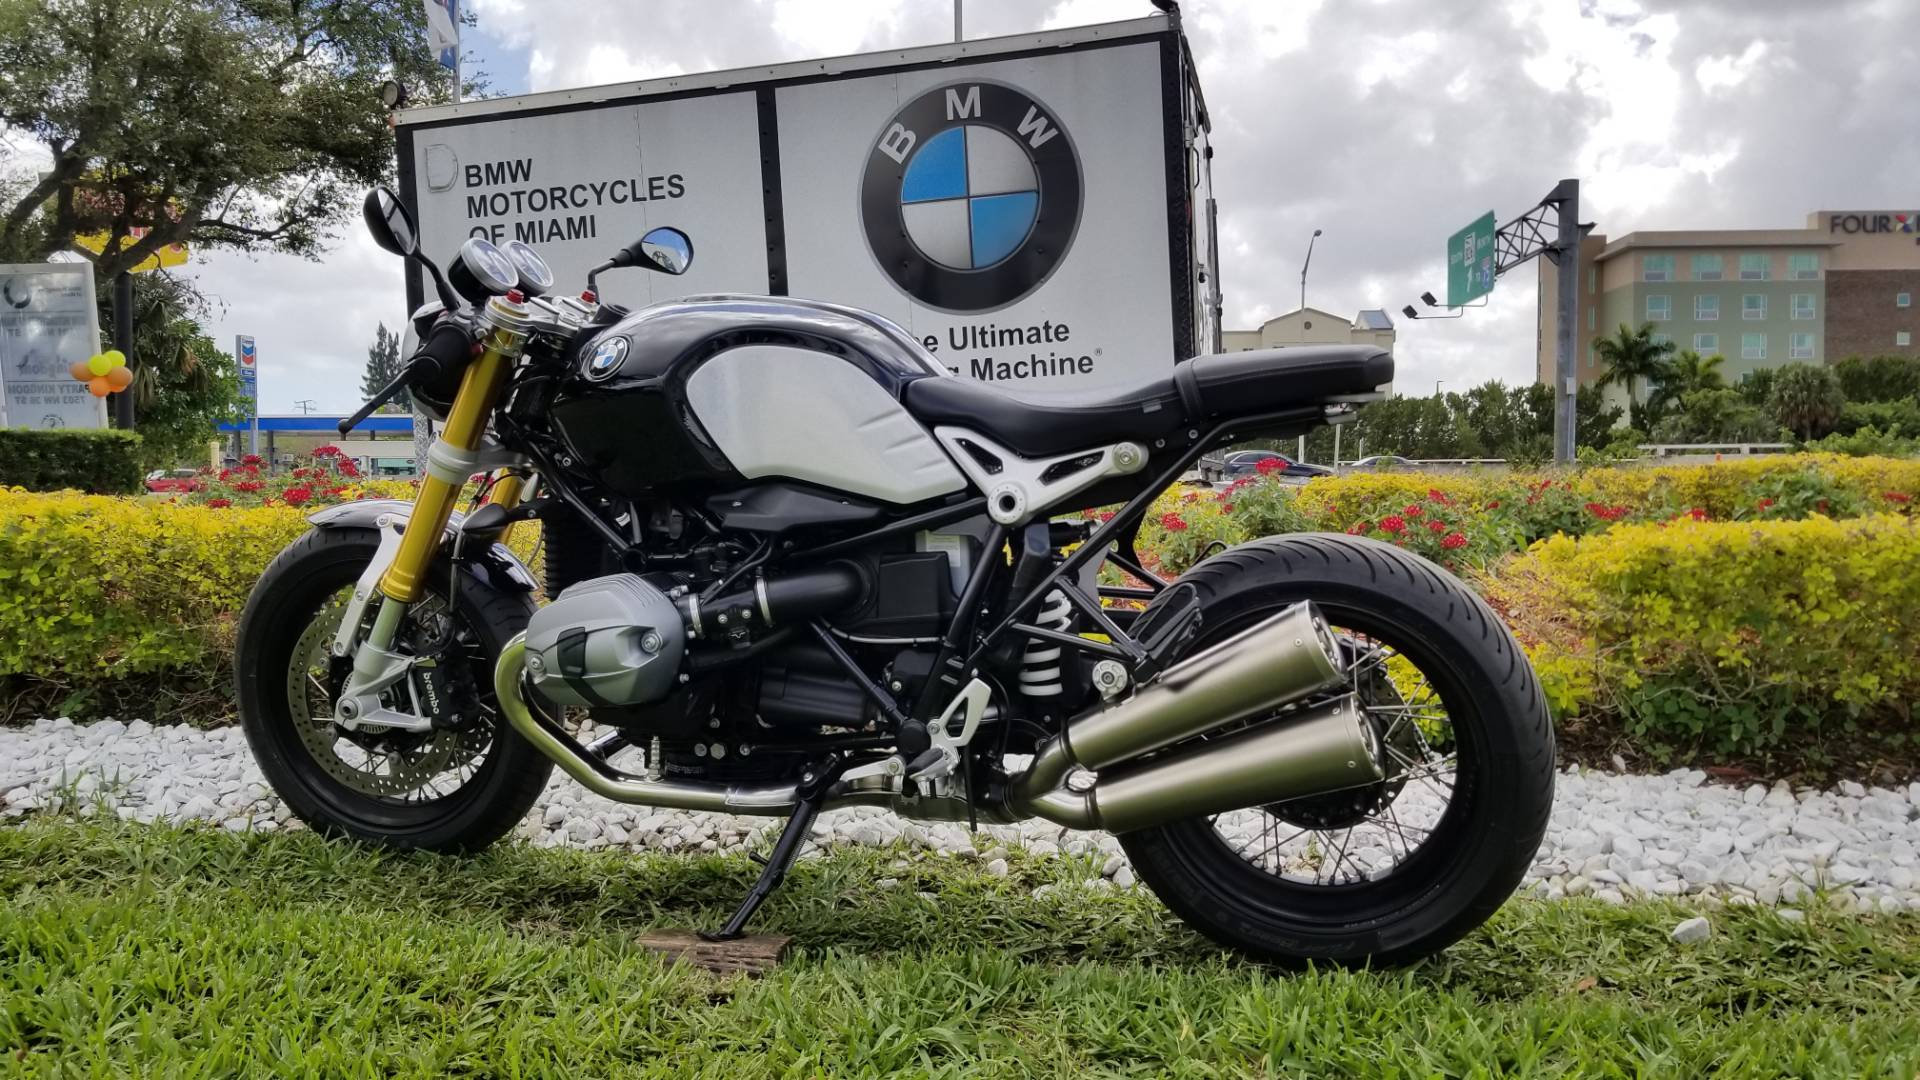 Used 2017 BMW R nine T For Sale, Pre owned BMW R nineT For Sale, BMW Motorcycle RnineT, BMW Motorcycles of Miami, Motorcycles of Miami, Motorcycles Miami - Photo 8